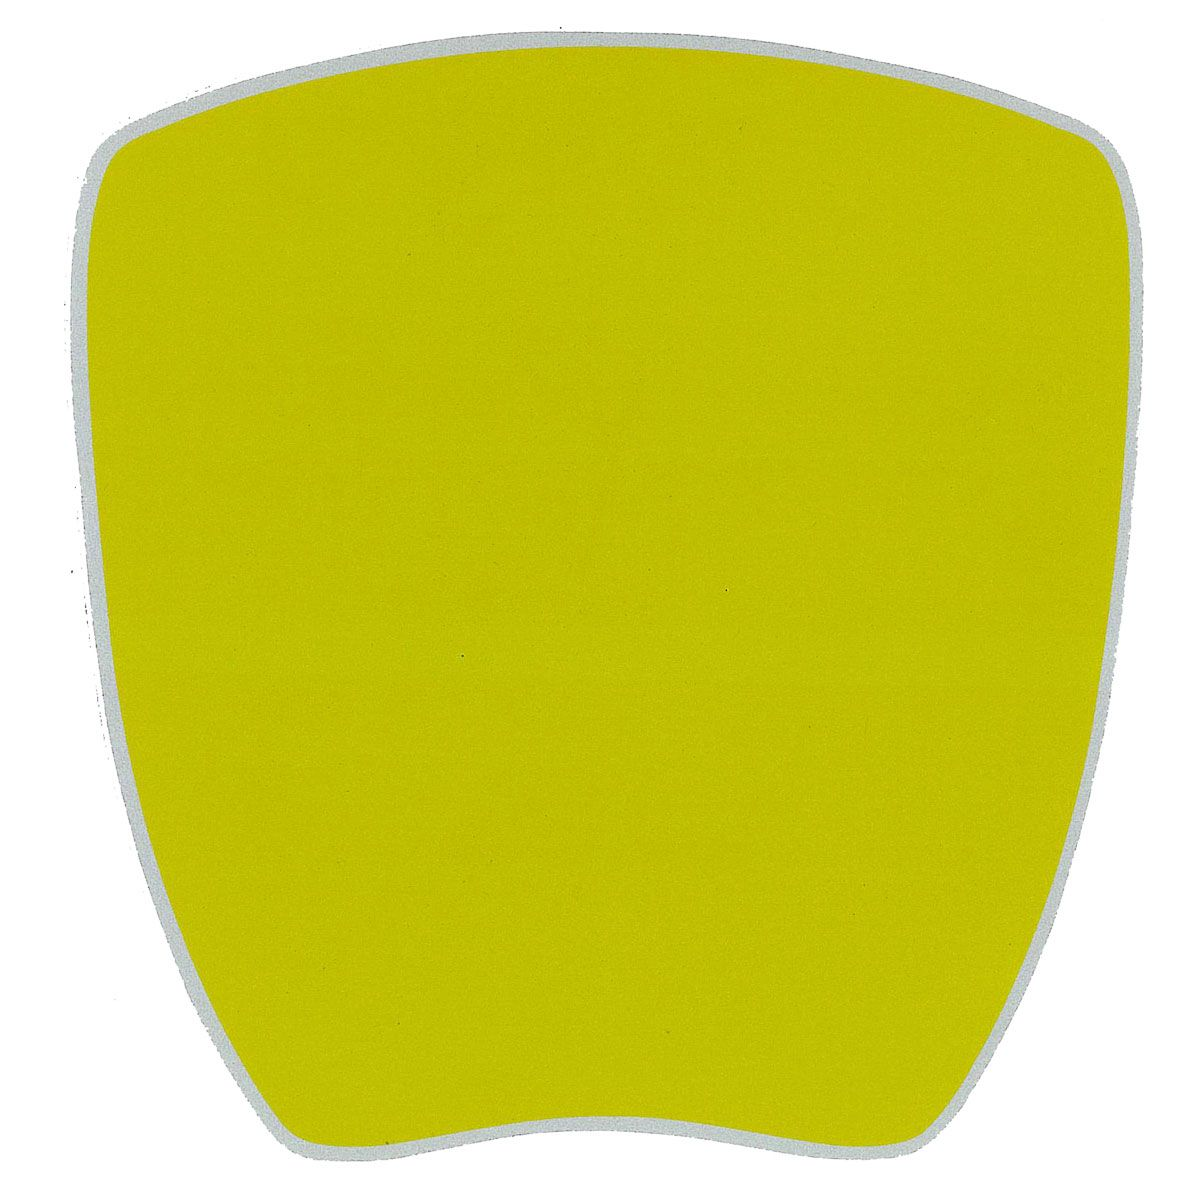 Kartech Number Plate Nassa Yellow Full Gloss Sticker 205 x 200mm